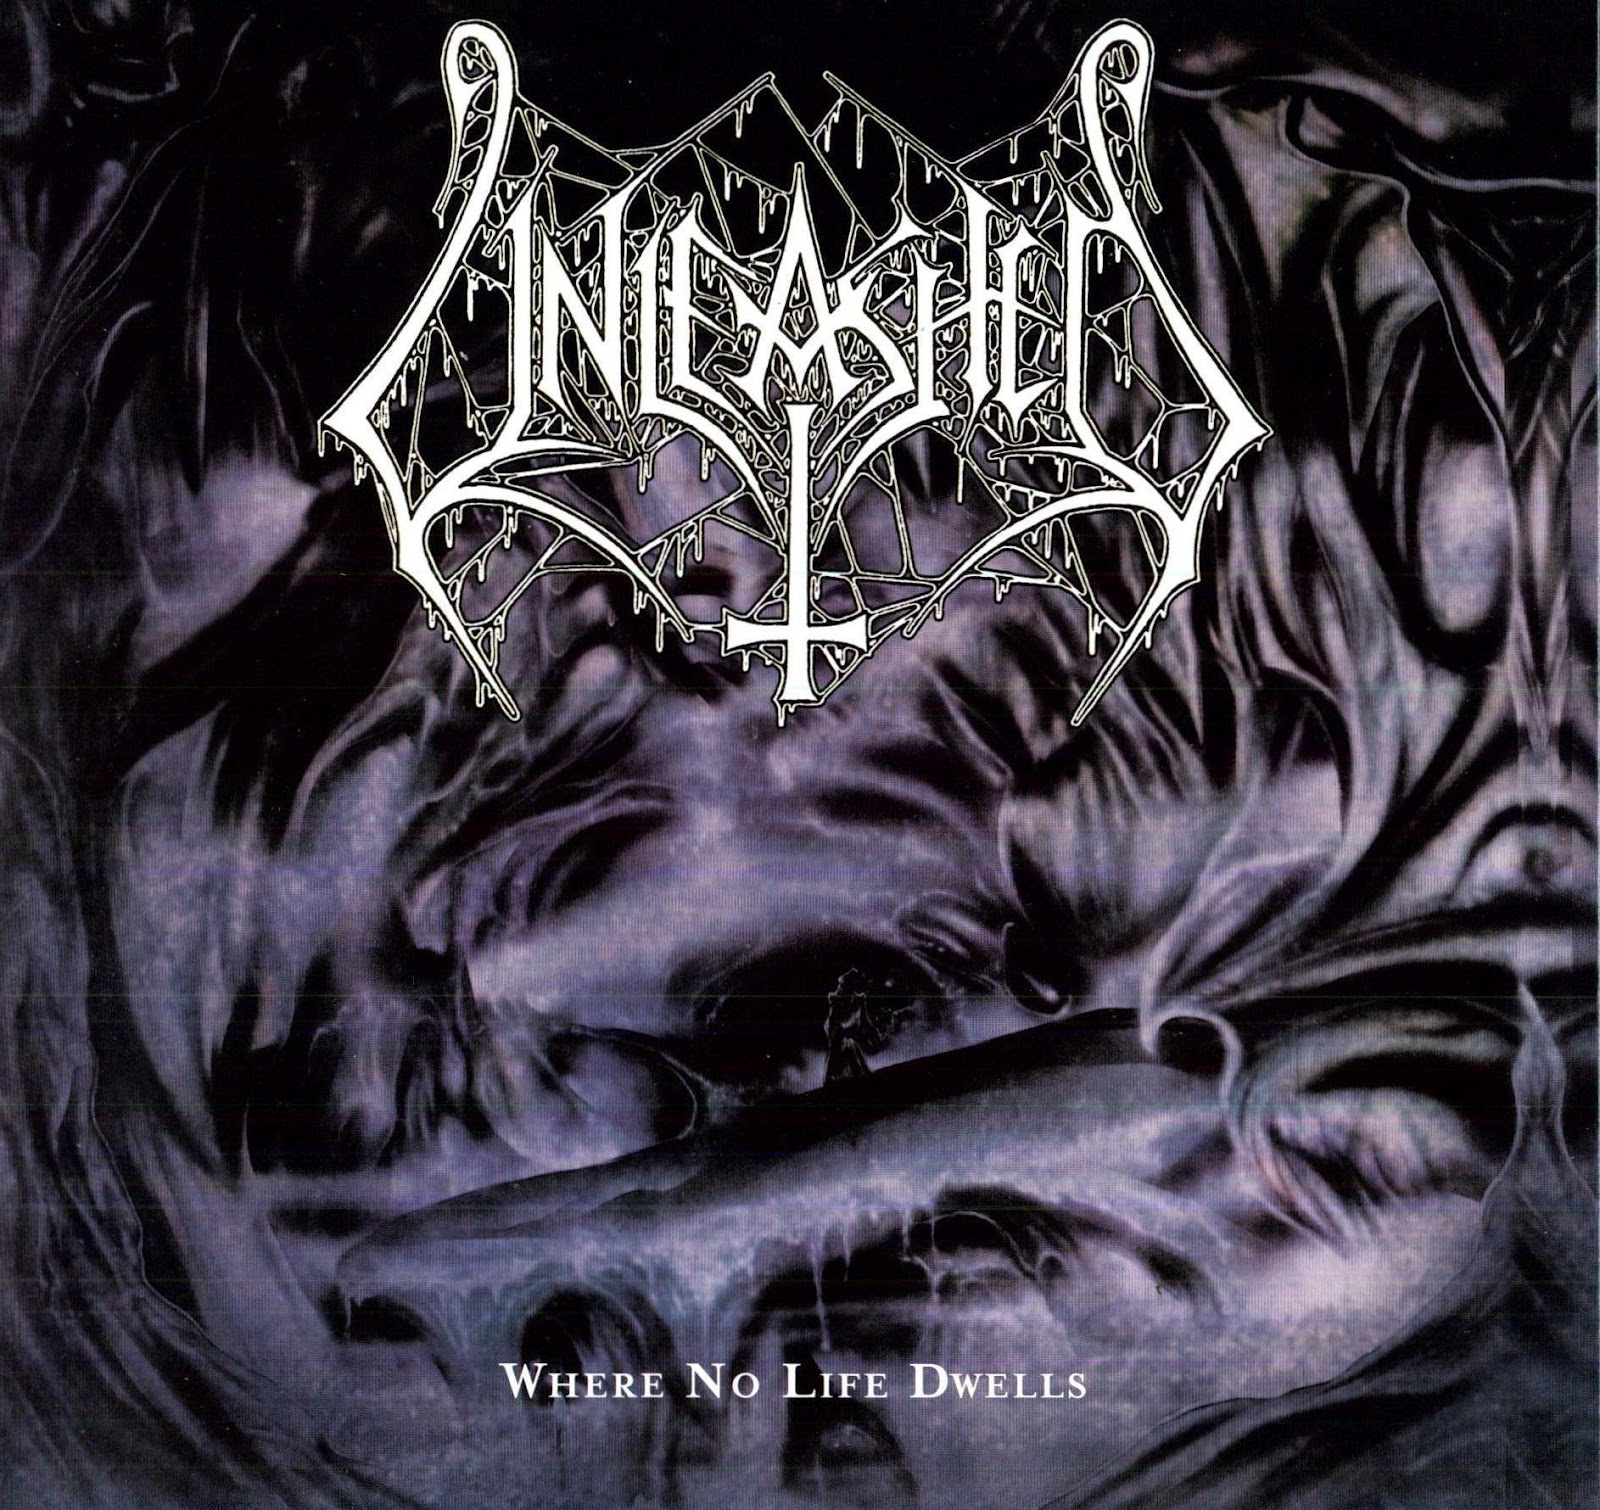 Unleashed - Where No Life Dwells